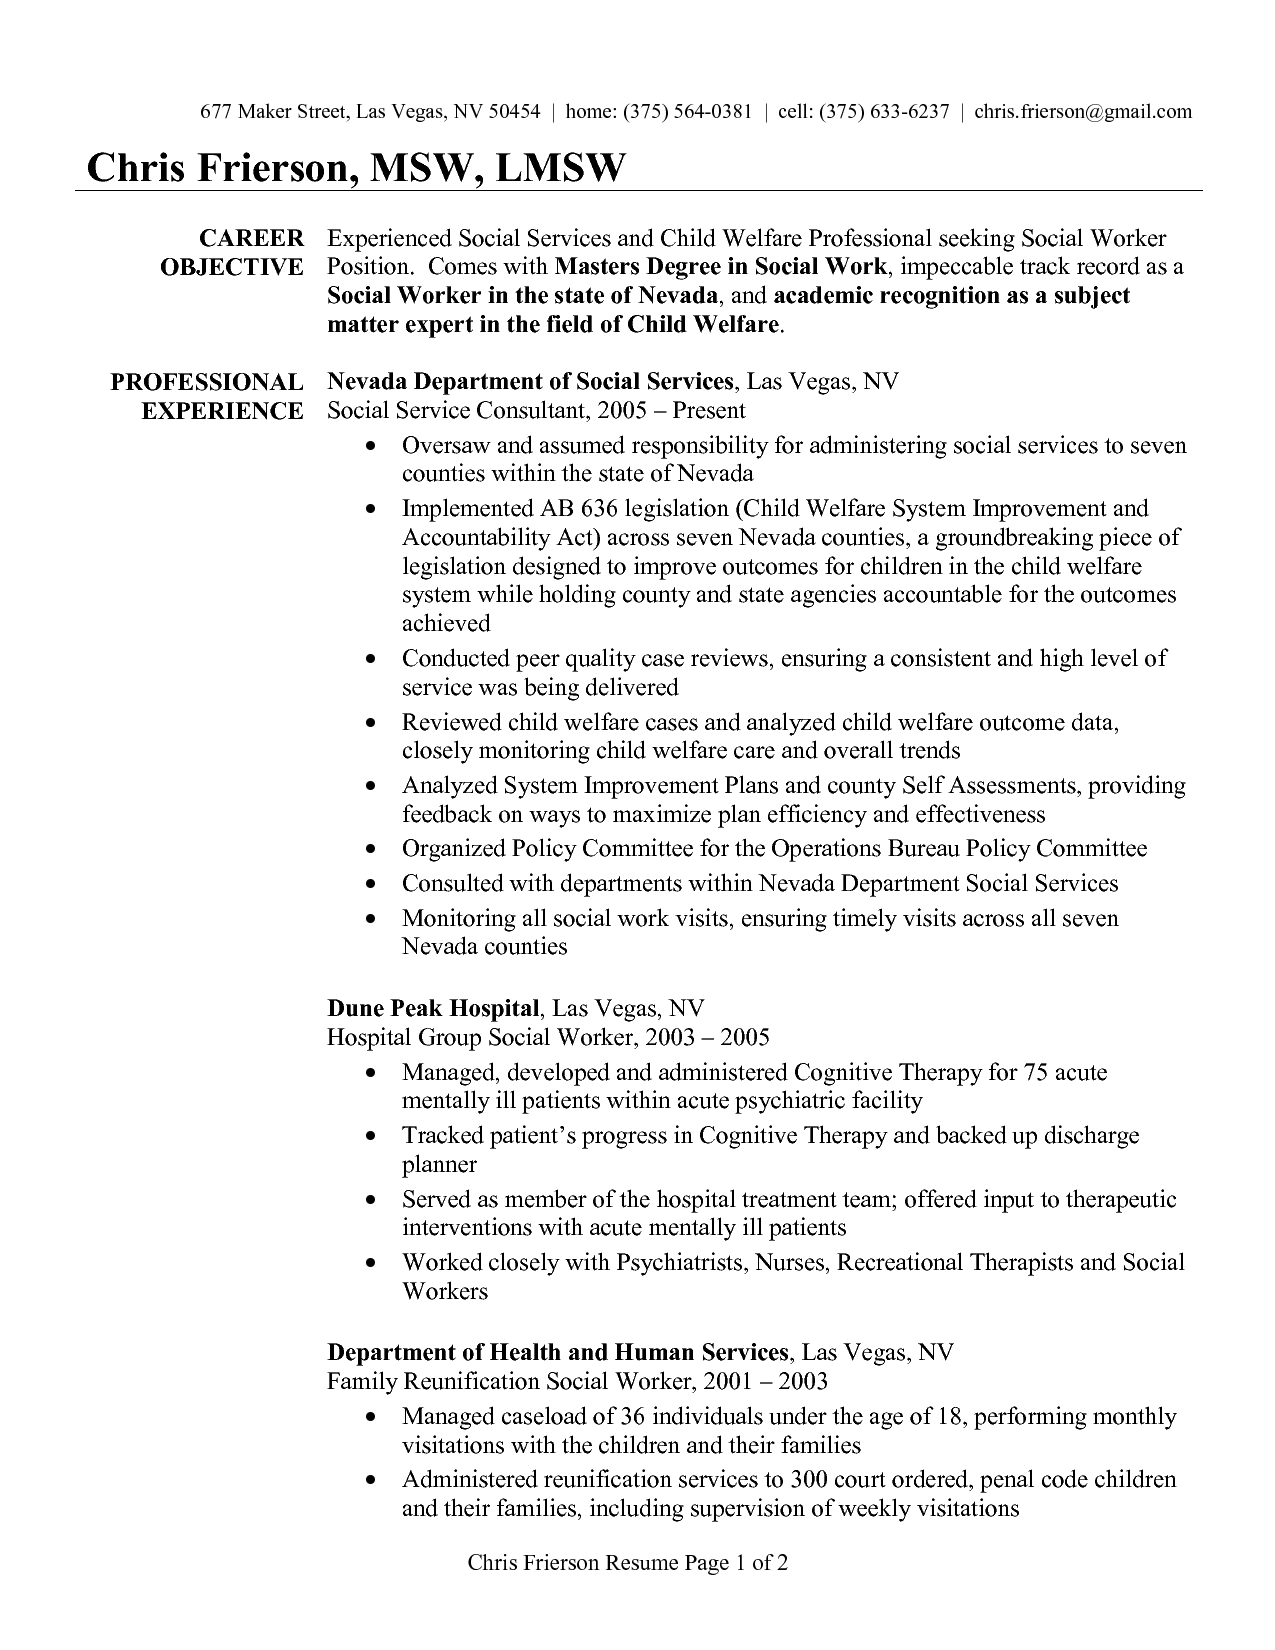 msw resume examples